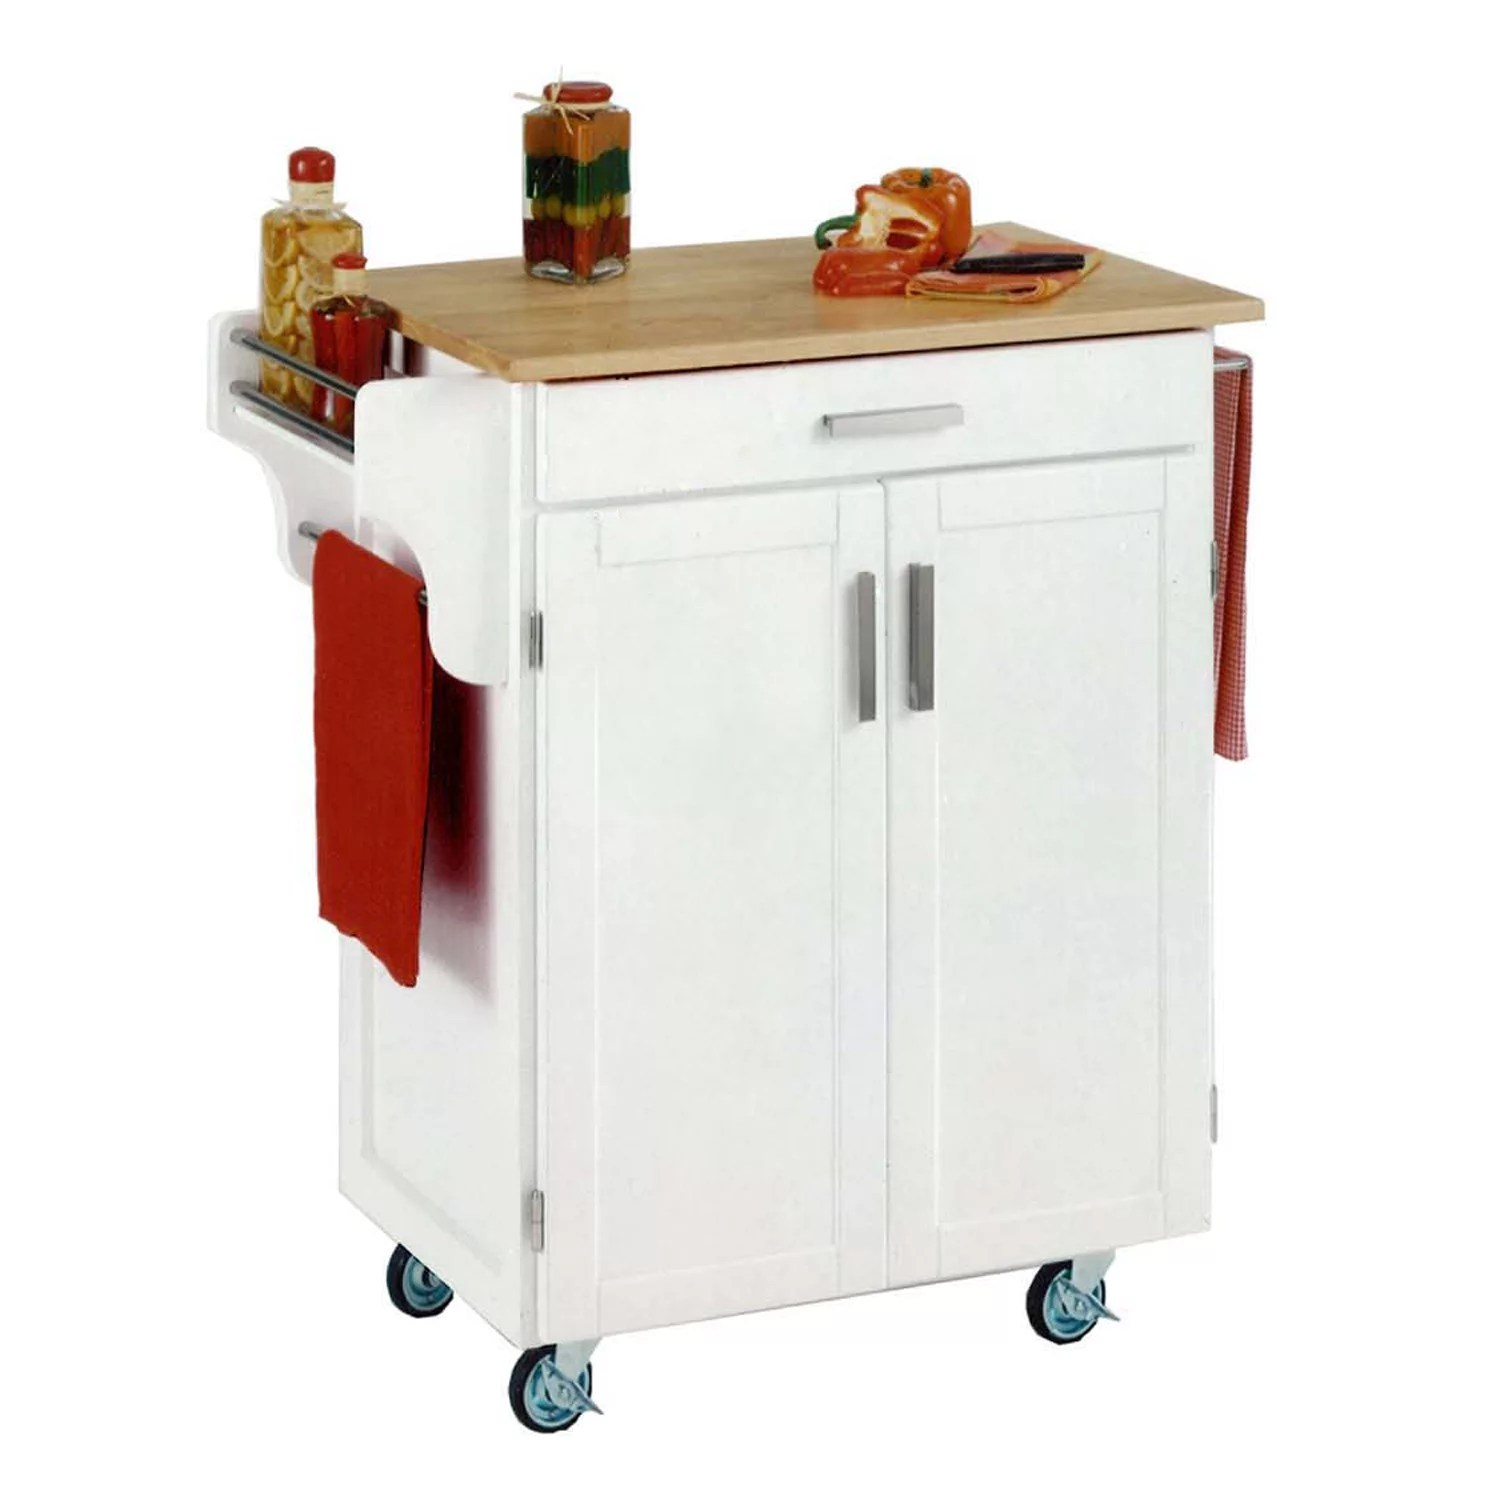 home styles kitchen cart tables for sale carts islands furniture kohl s wood top cuisine